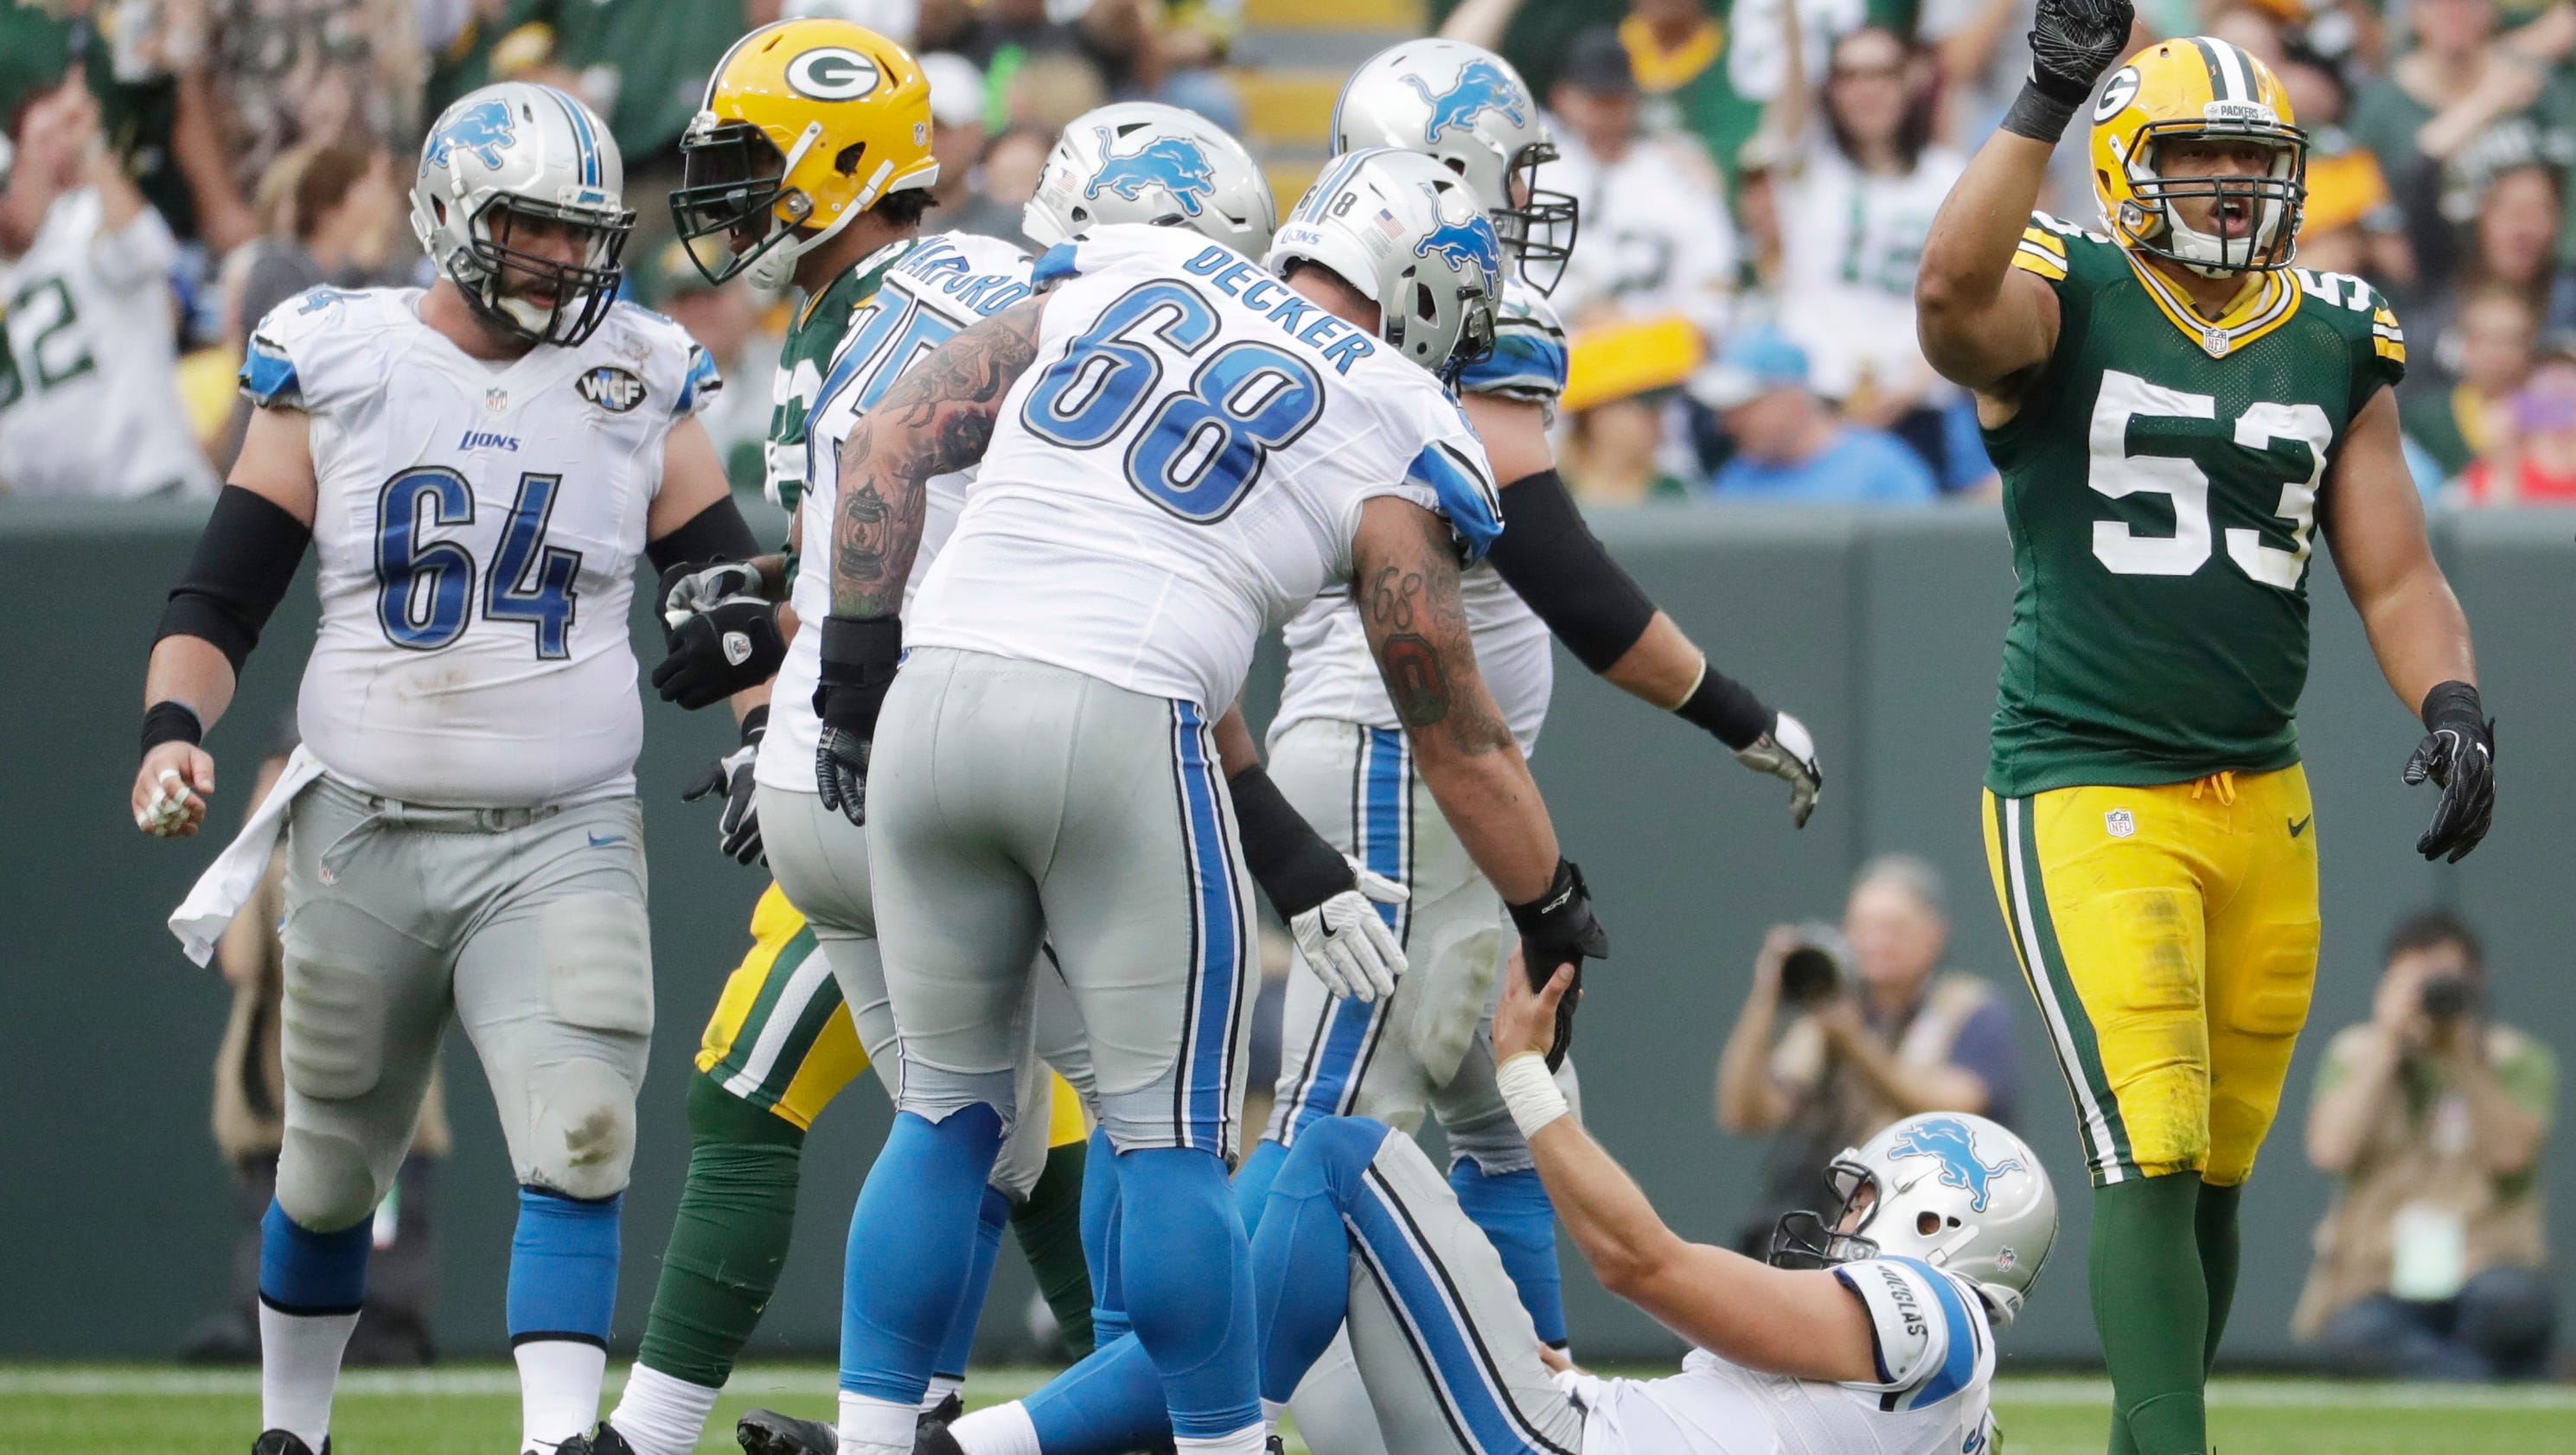 636104256868780834-ap-lions-packers-football-wi-2-